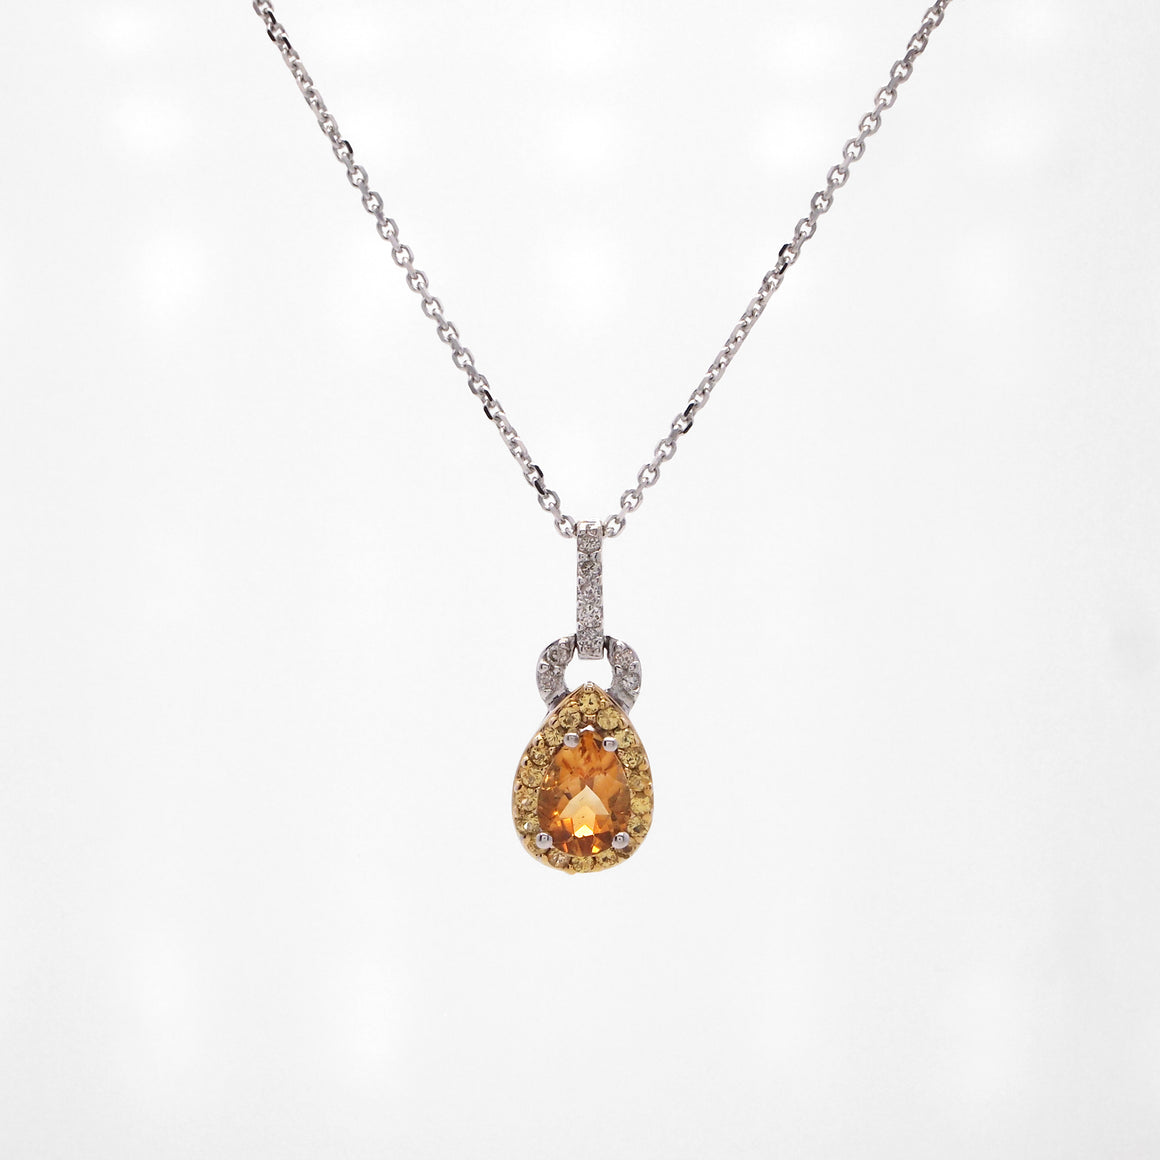 14K/18K White Gold Citrine And Sapphire Pear Necklace